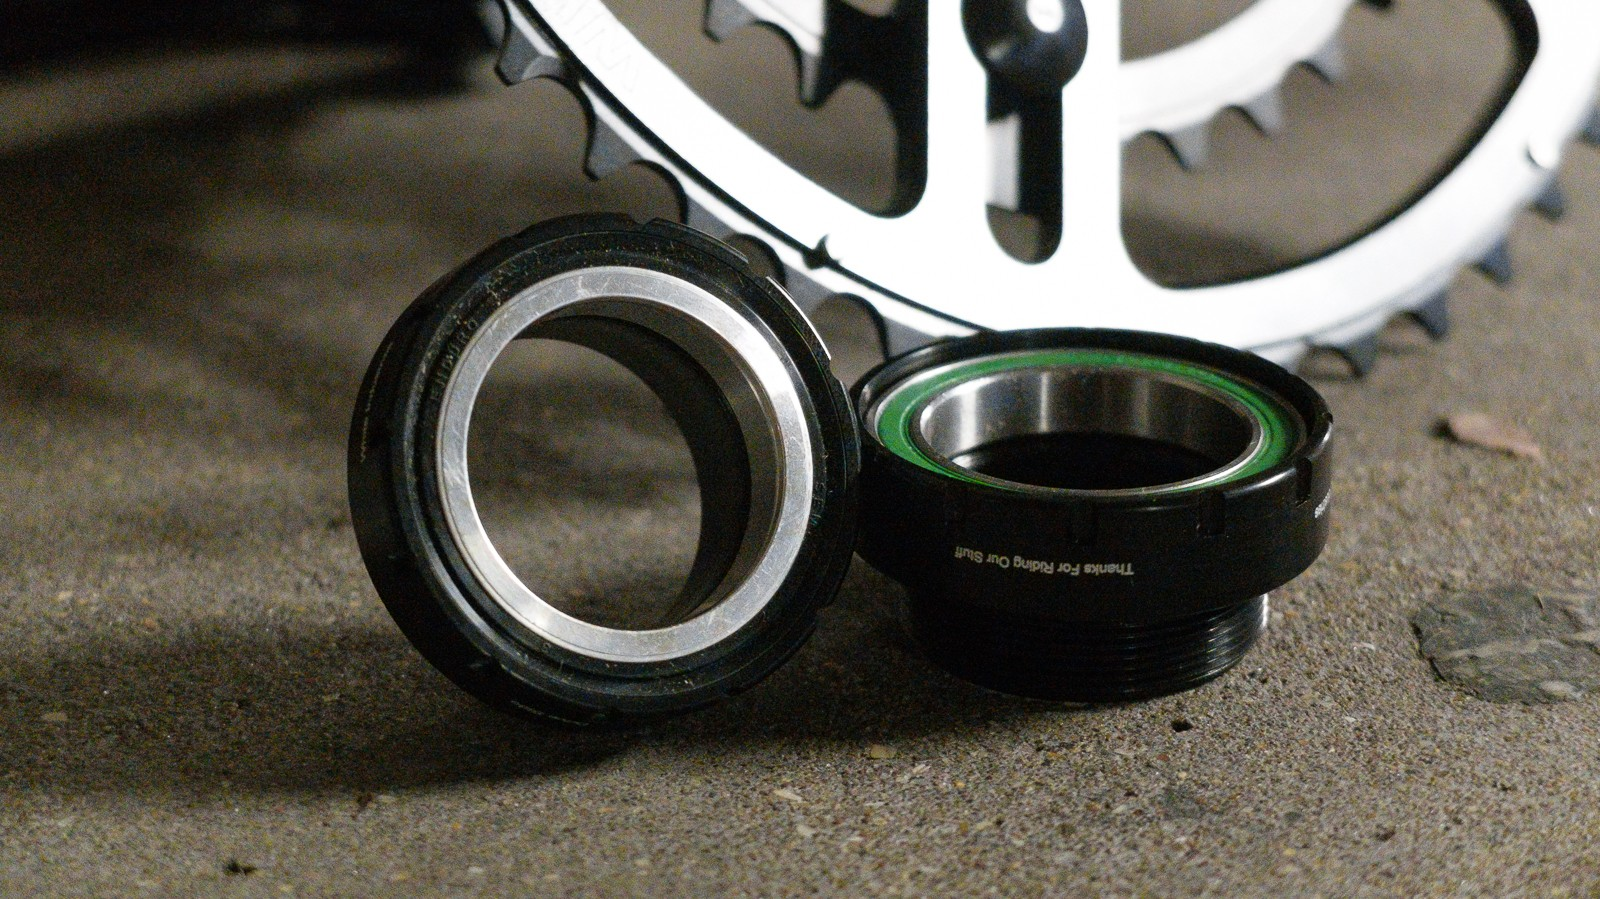 The cranks spin on a dedicated bottom bracket which uses Enduro bearings